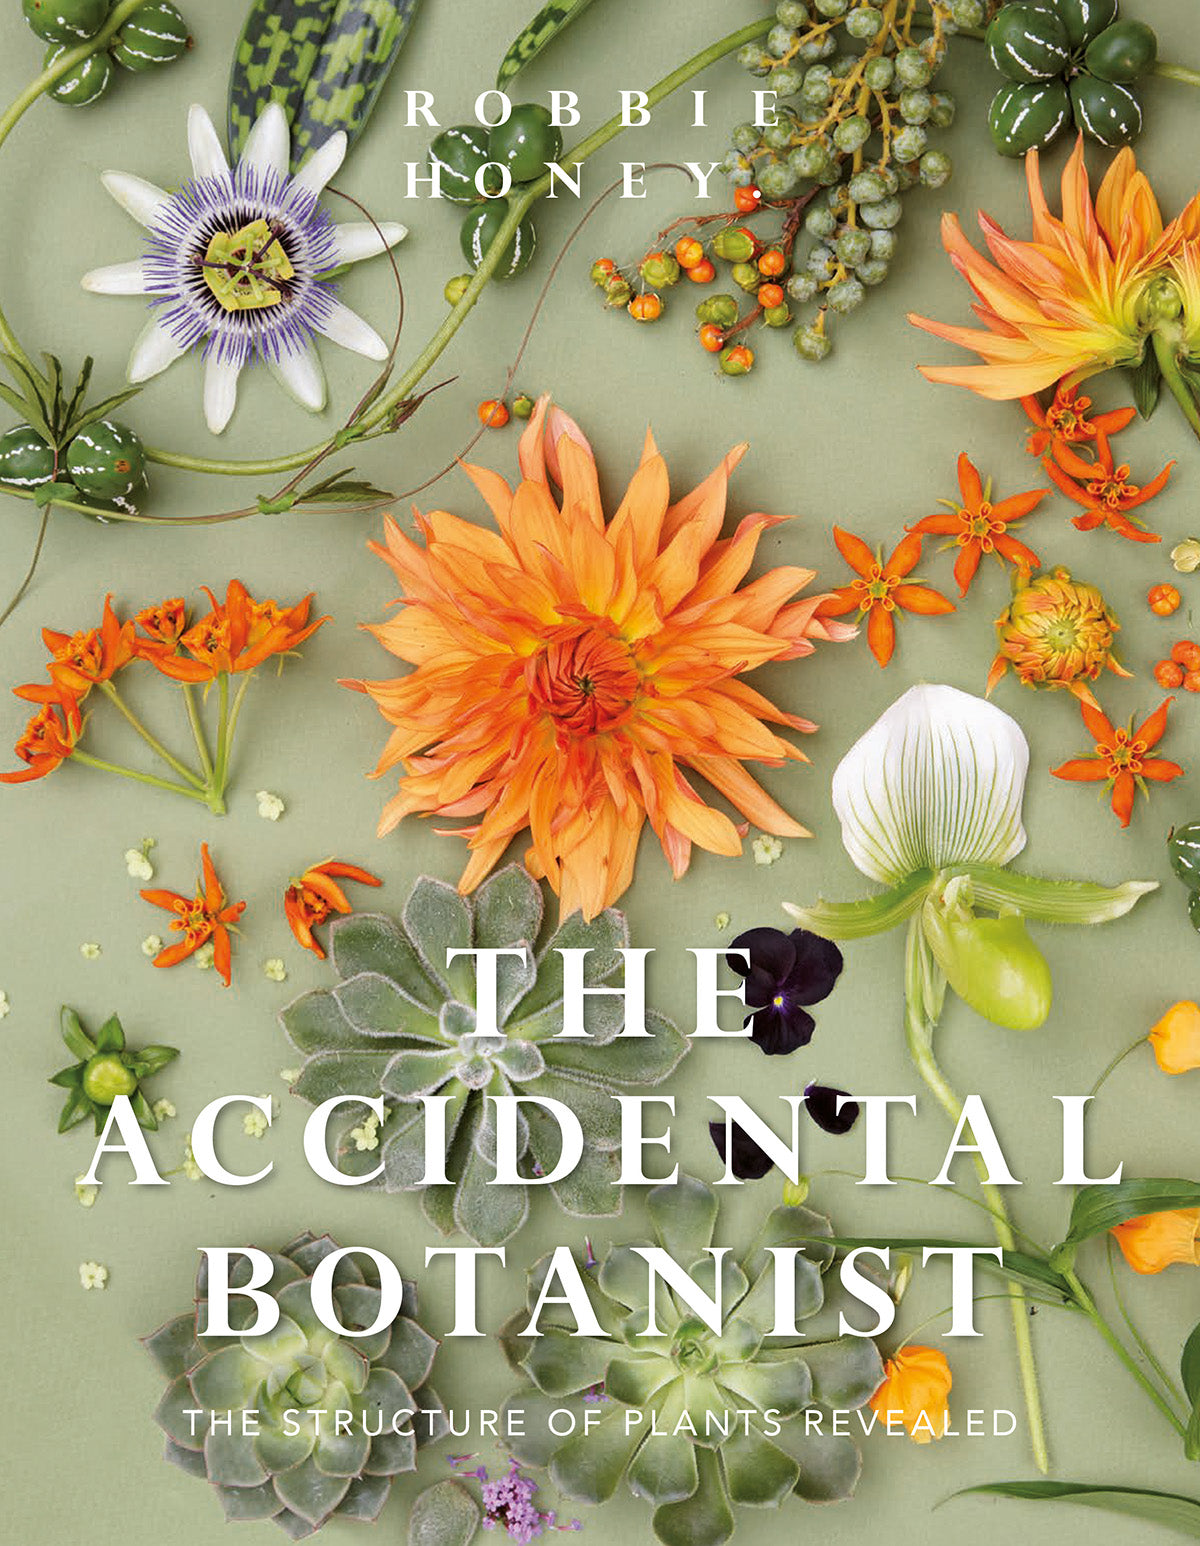 Image result for The Accidental Botanist: The Structure of Plants Revealed by Robbie Honey